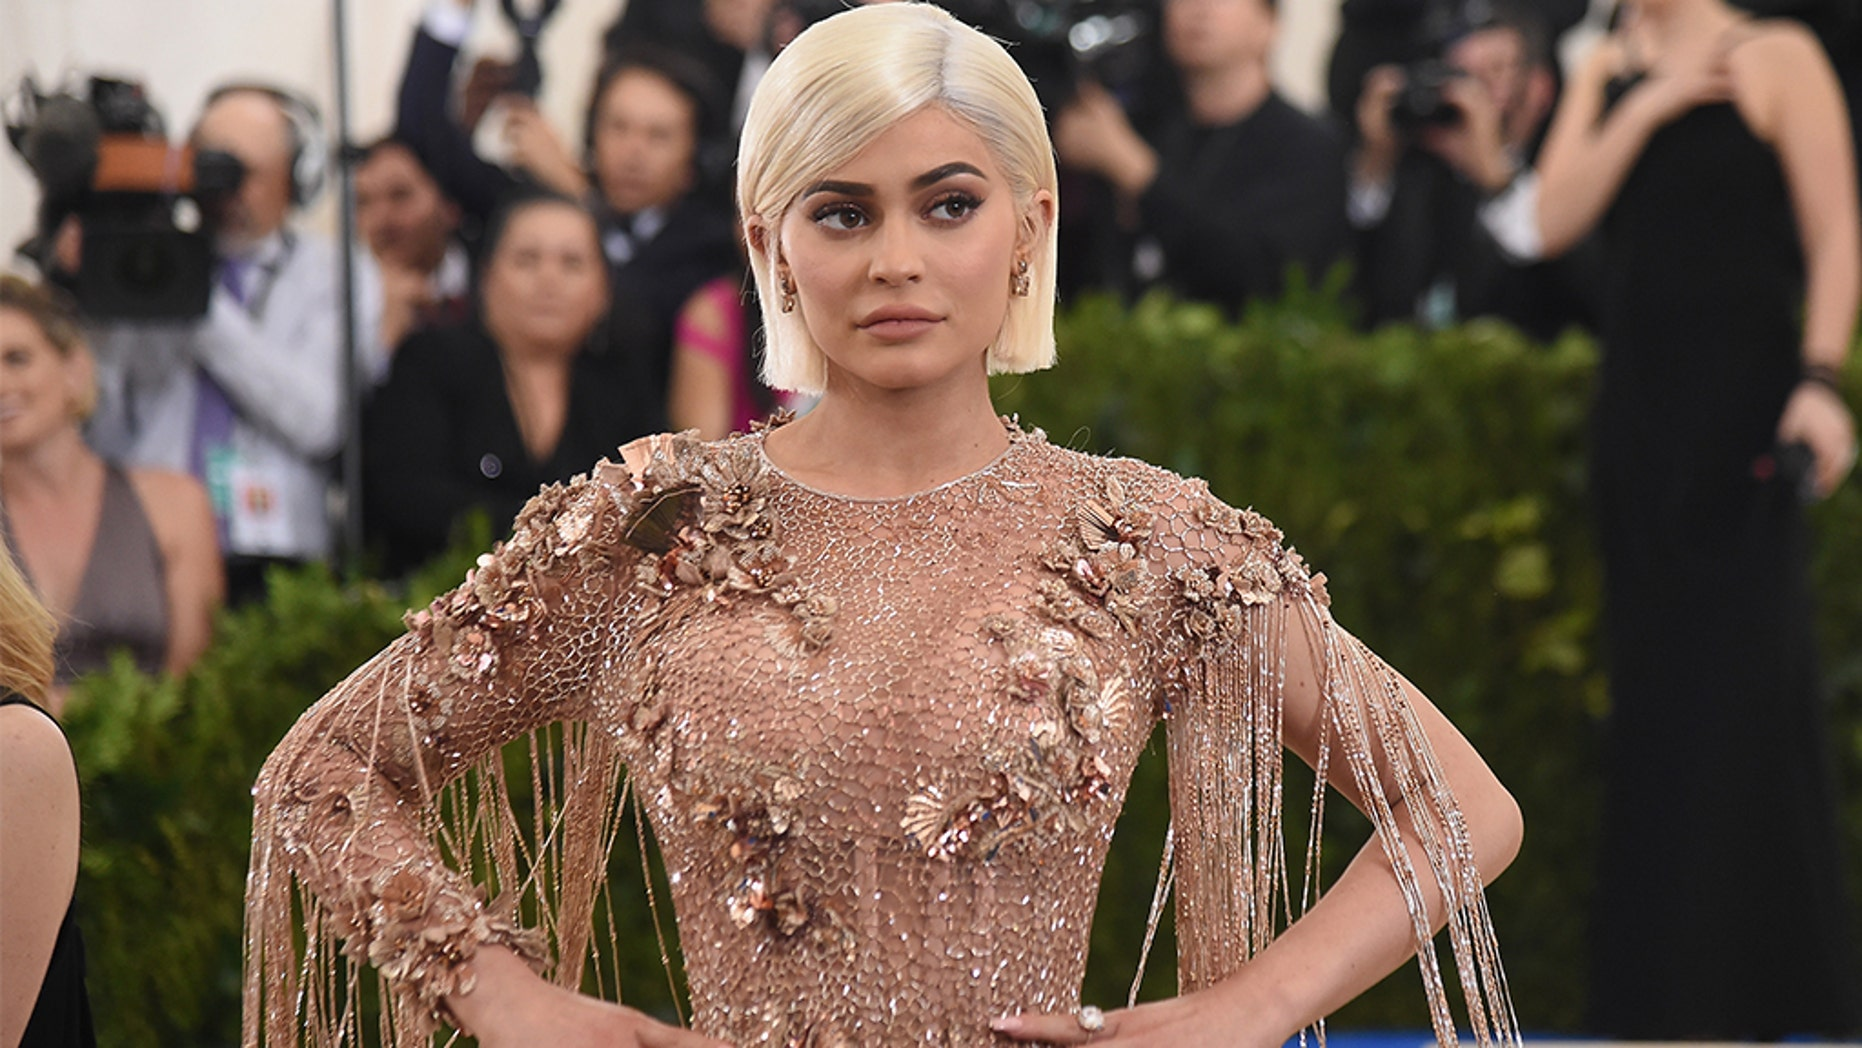 Kylie Jenner nearly gave Stormi a completely normal (and super pretty) name